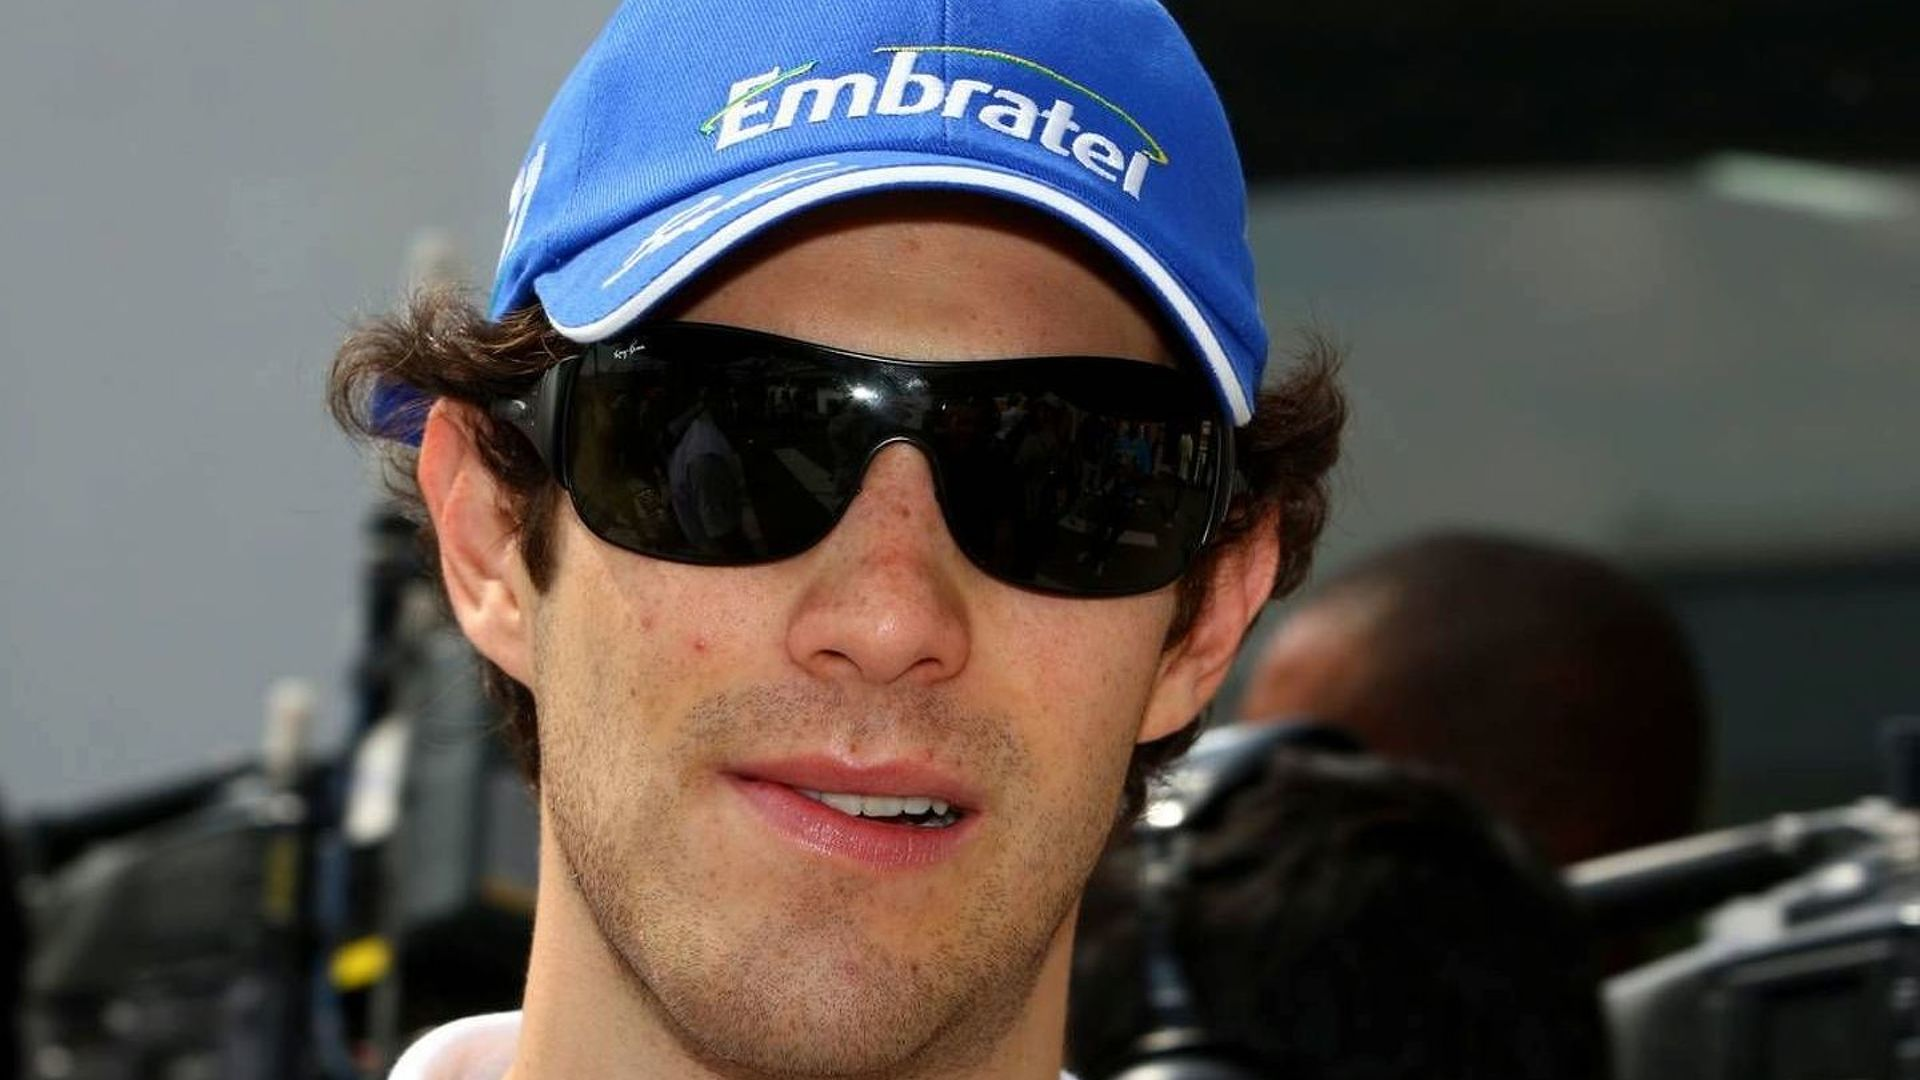 Senna could switch to Toro Rosso for 2010 - reports